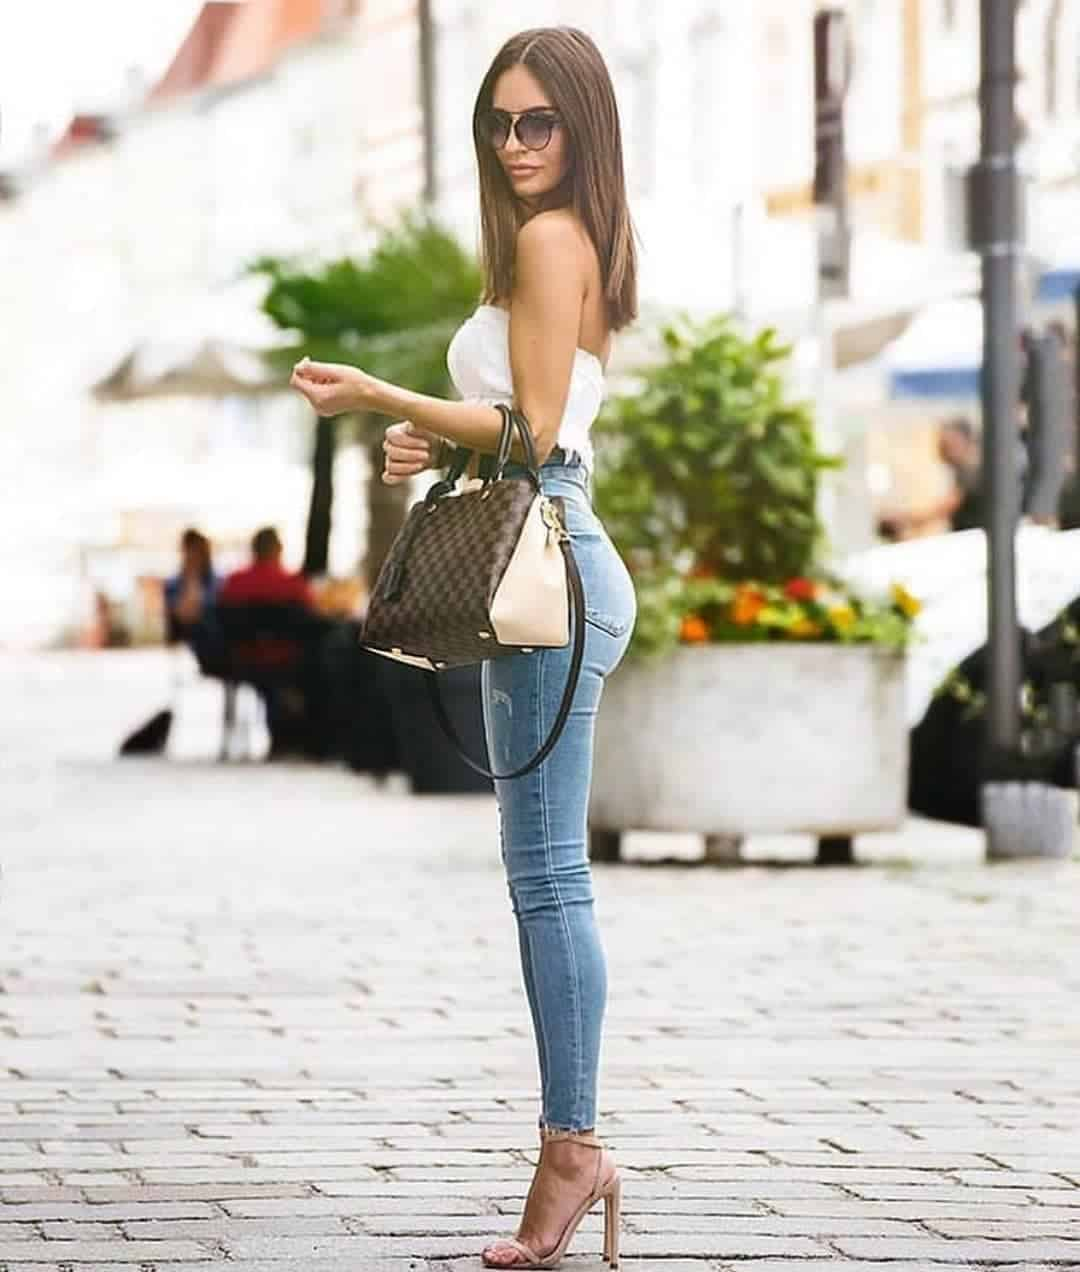 2019 Fashion For Women: Women Handbags 2019: Fashion Trends For Ladies Handbags 2019